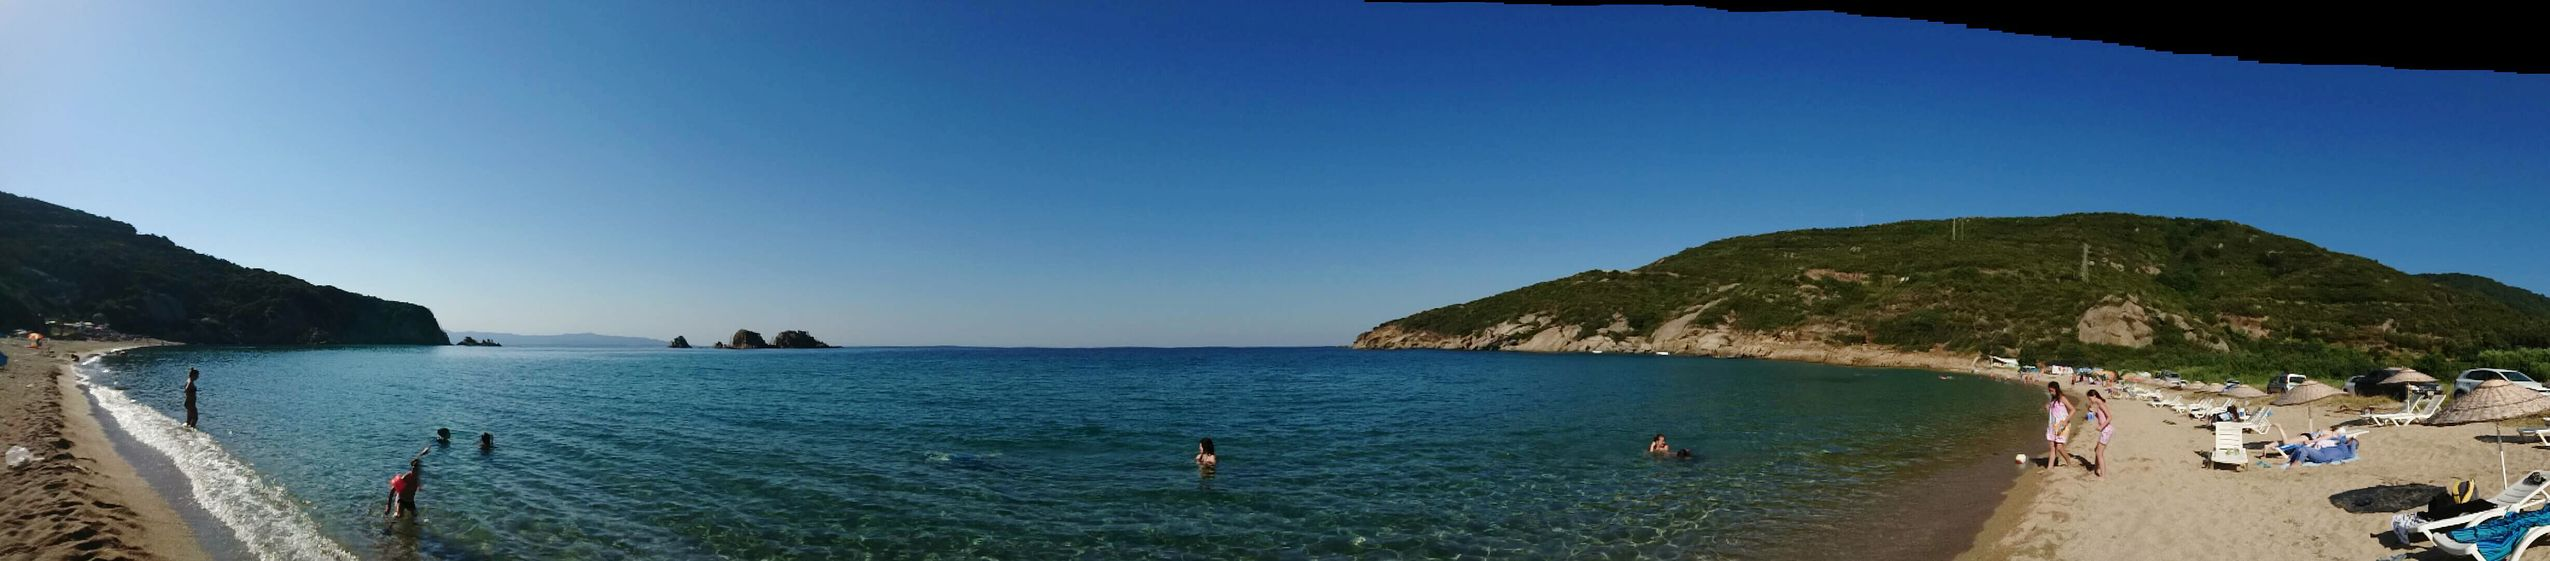 Panoramic Photography Phone Photography Beach Life Clear Water Cleanbeaches Turkey Beautiful Nature